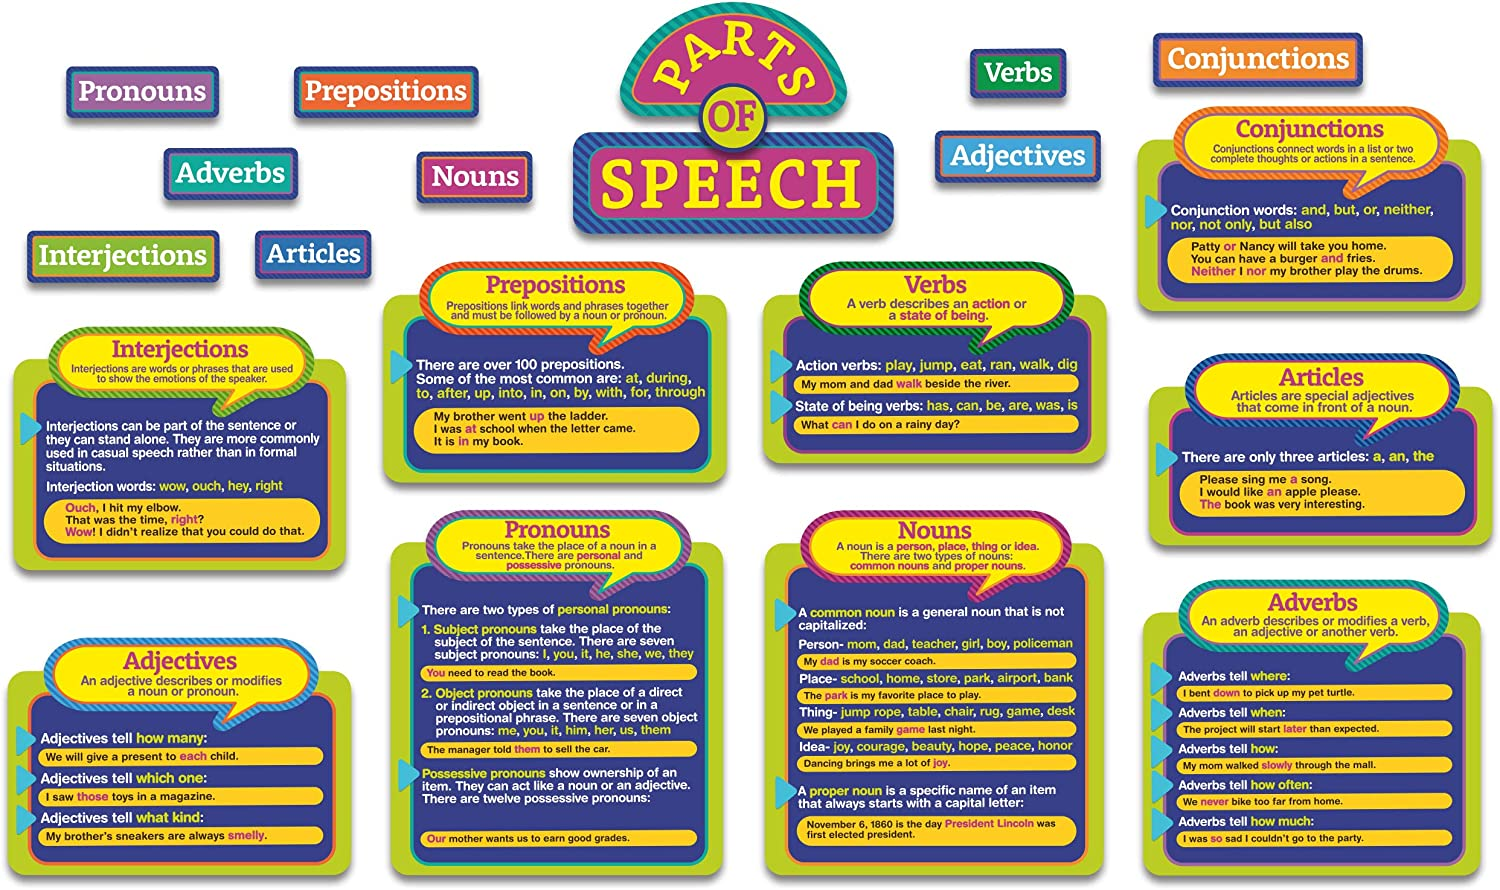 Eureka Parts of Speech Educational Bulletin Board Set and Classroom Decorations for Teachers, 22pcs